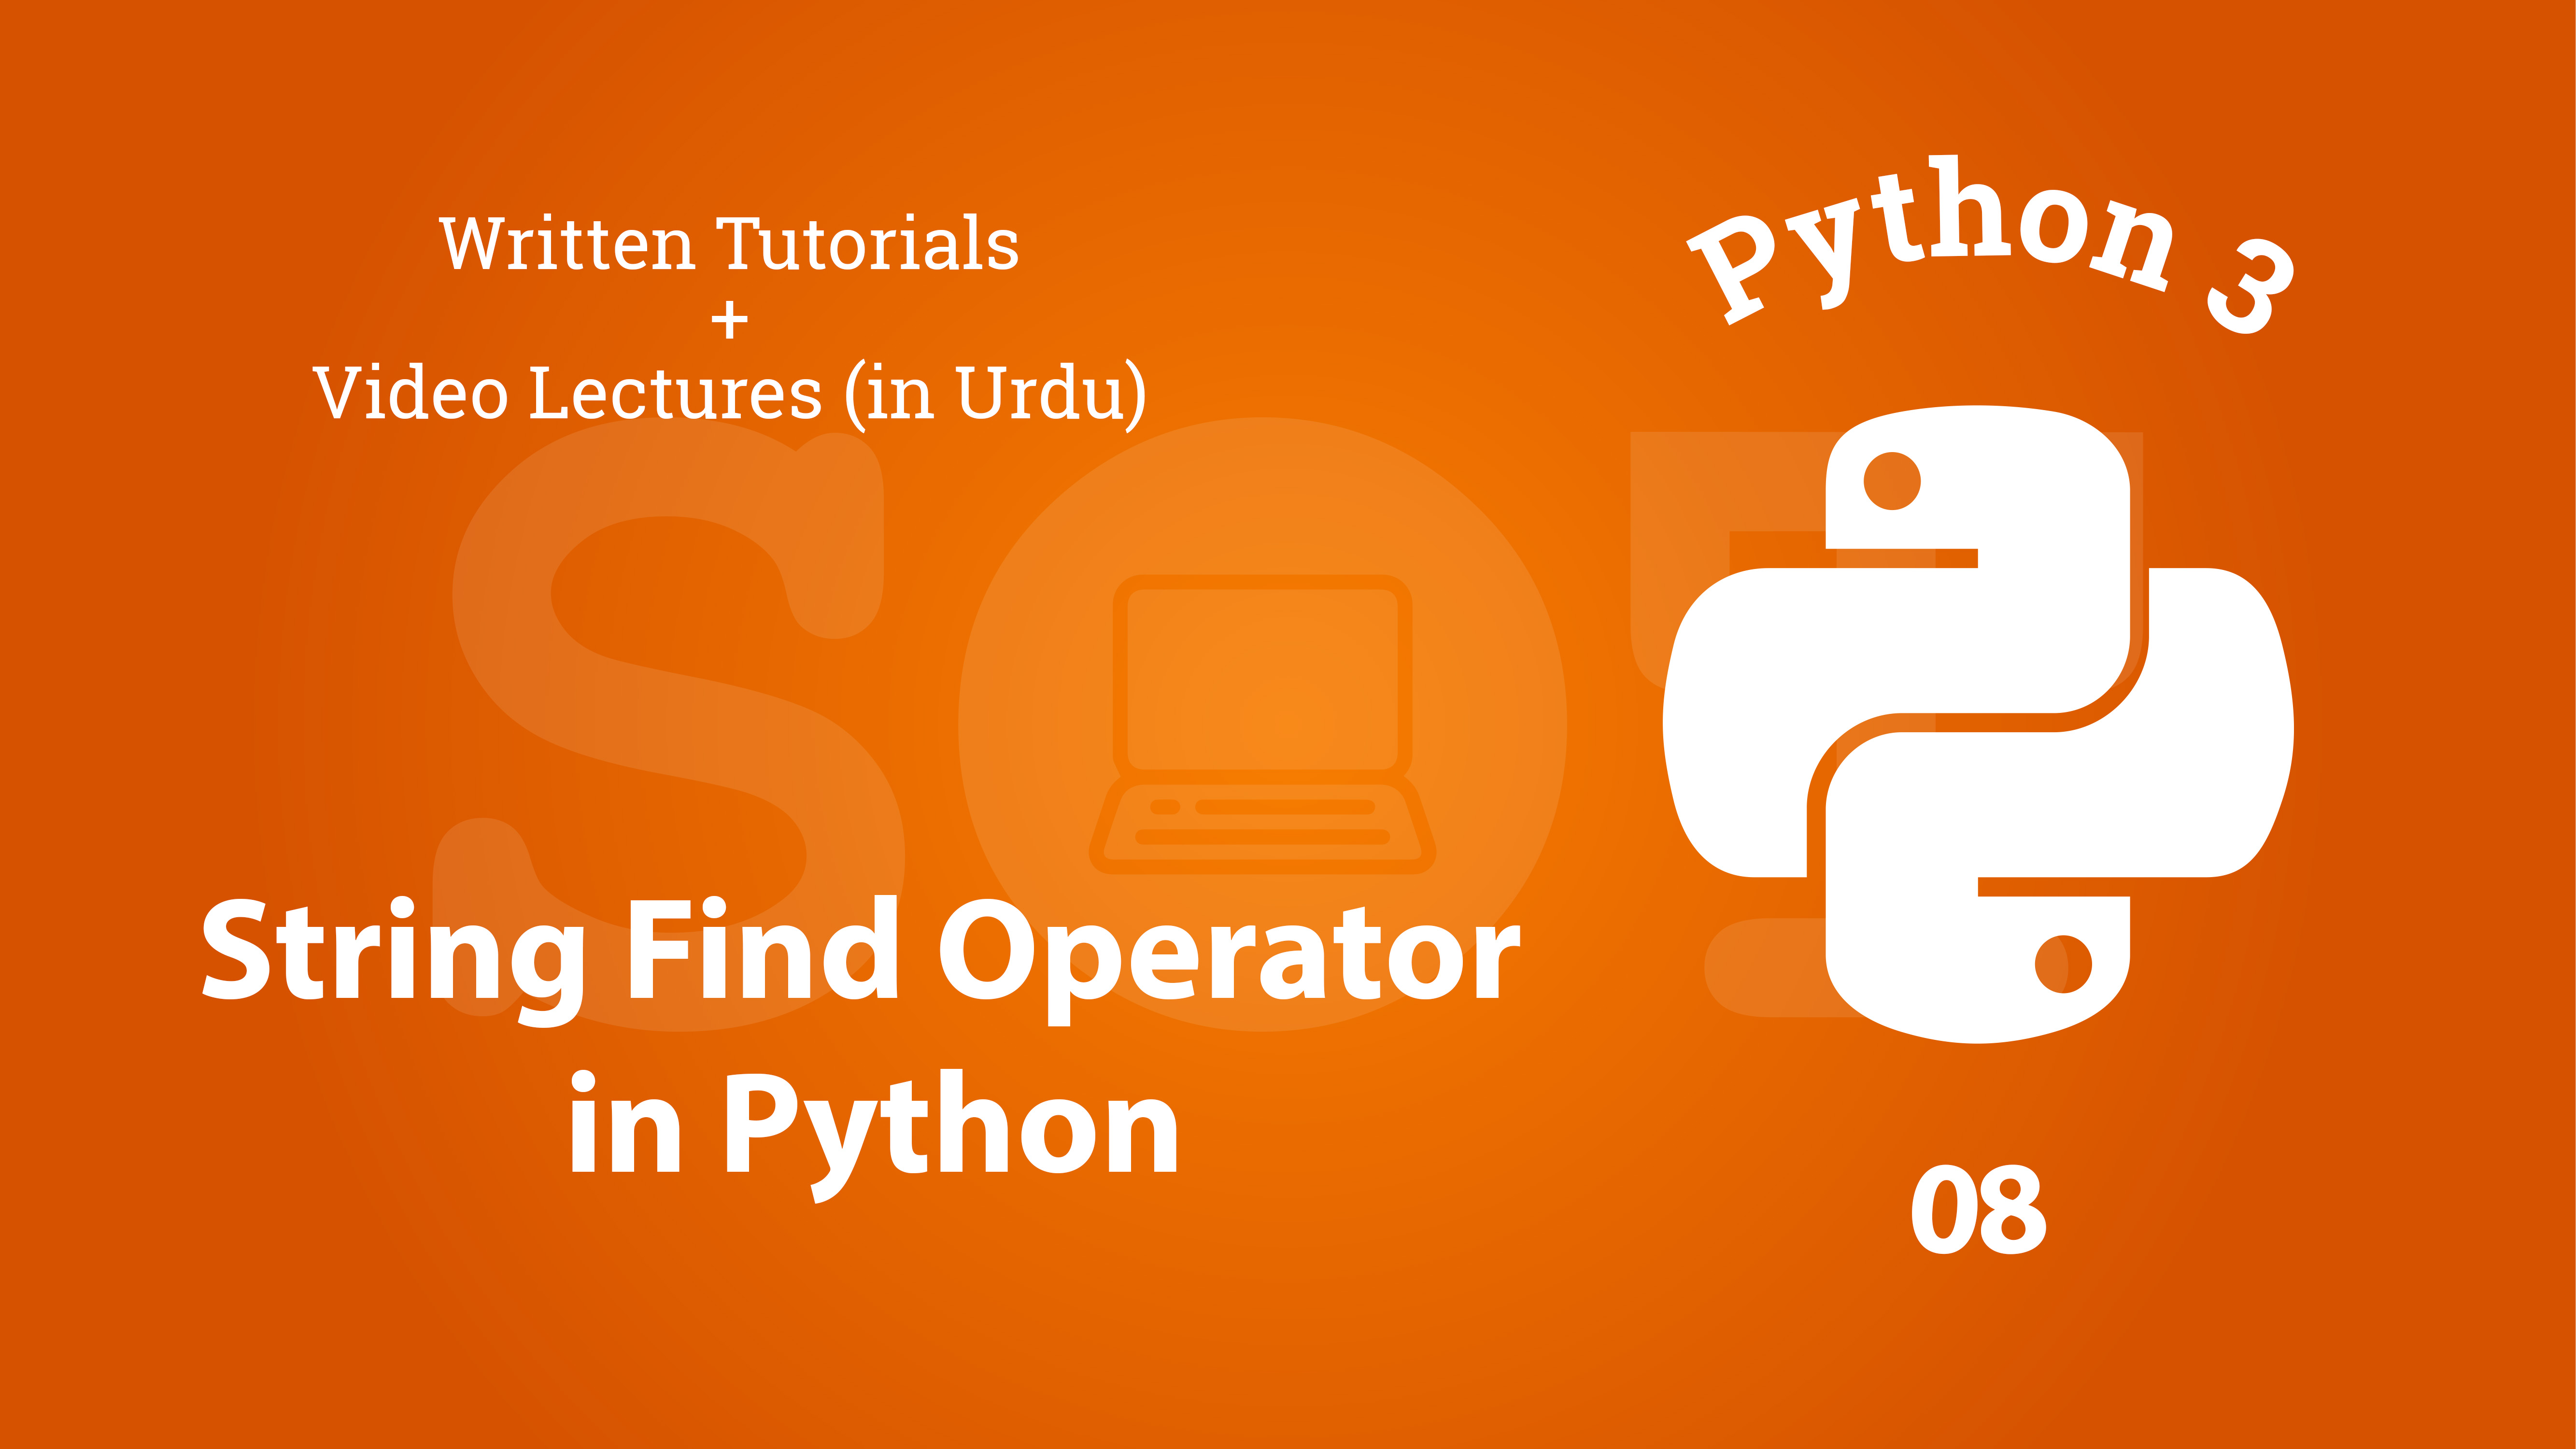 Python String Find operator - written tutorial with video